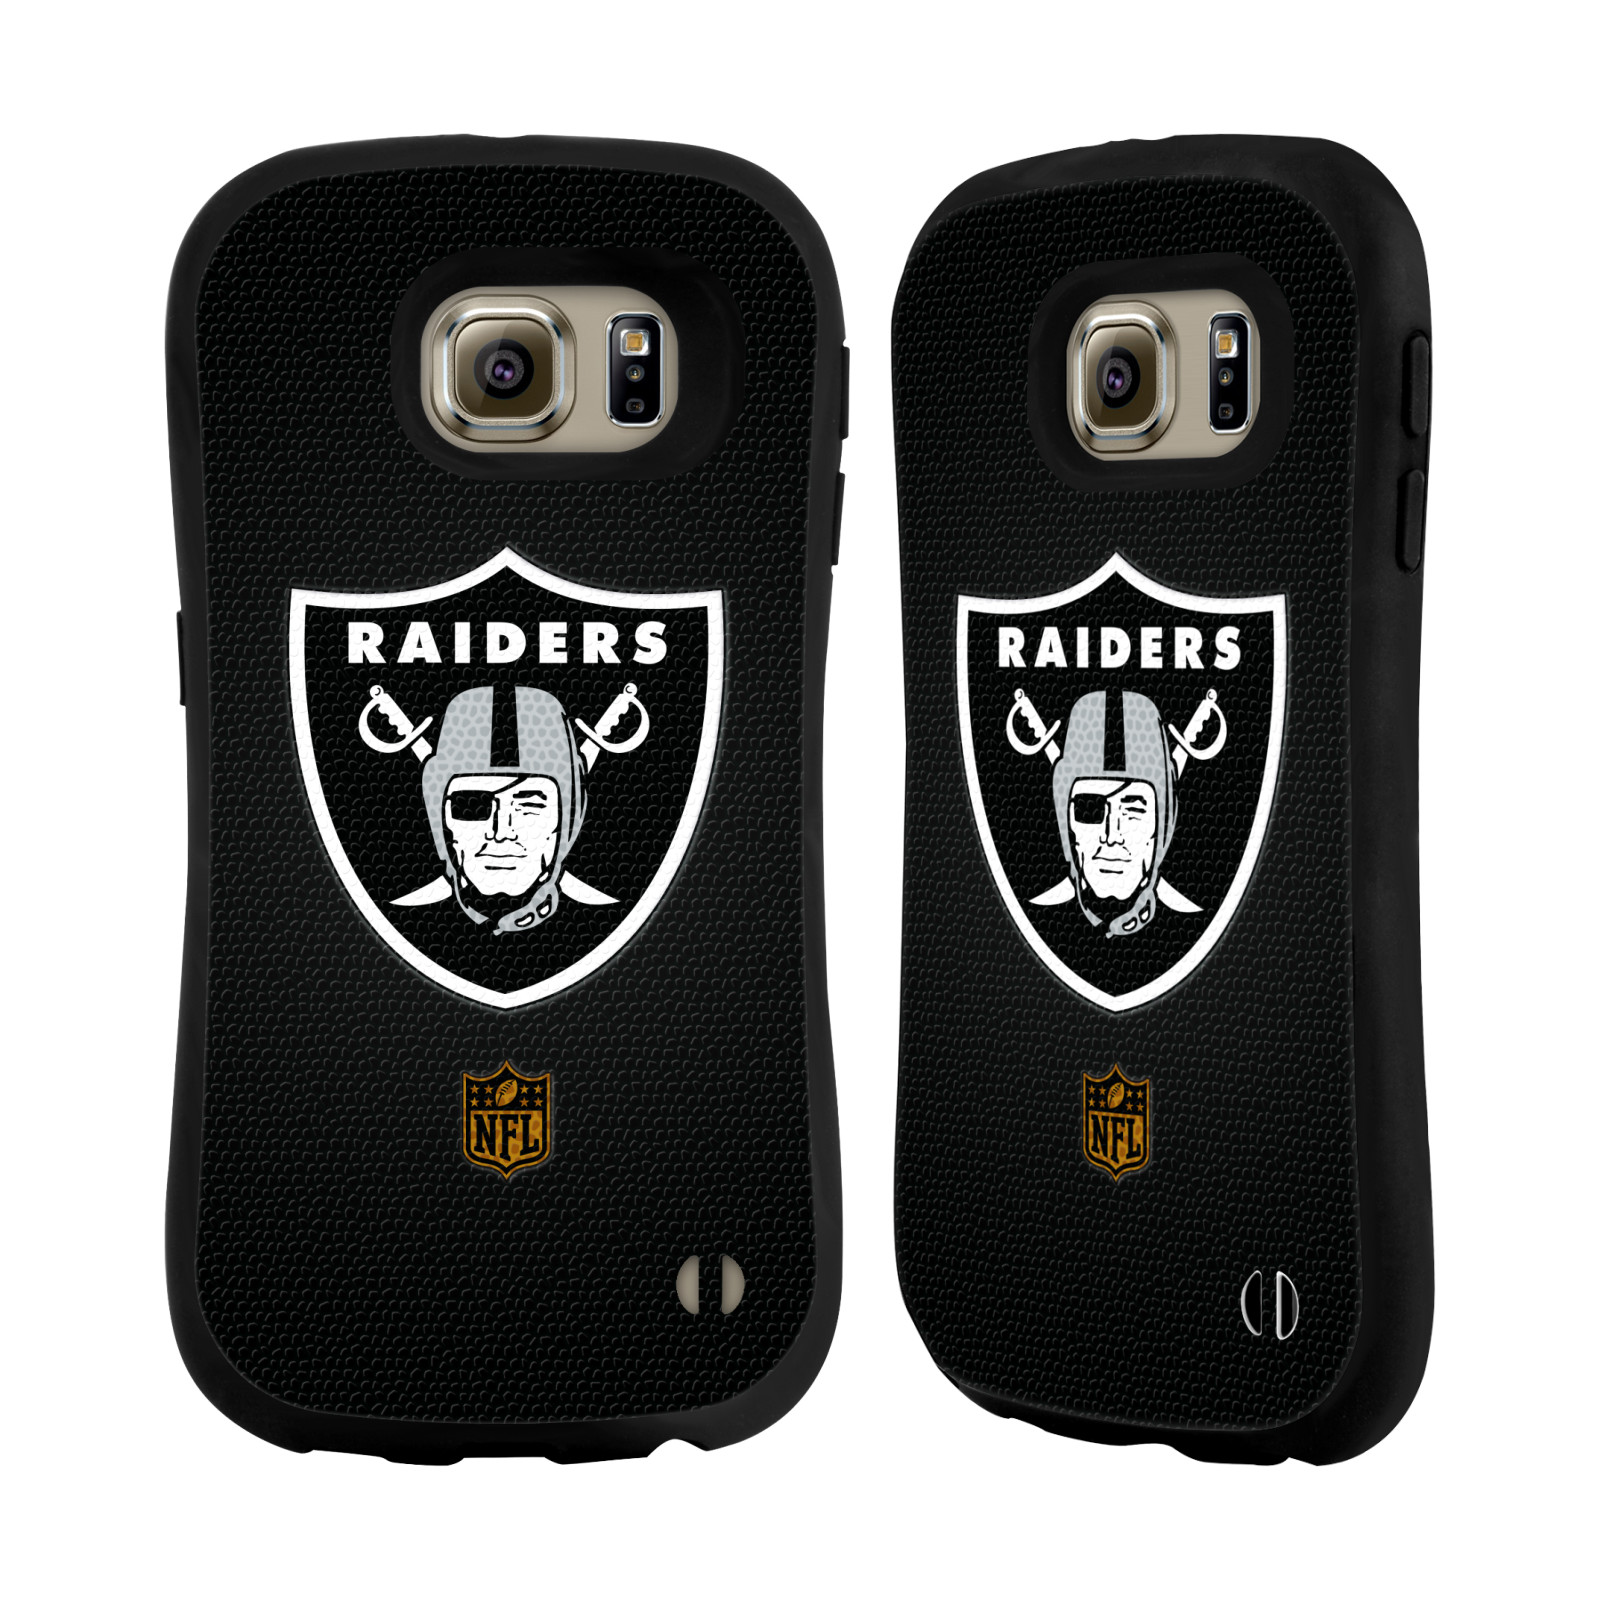 Raiders Iphone S Case